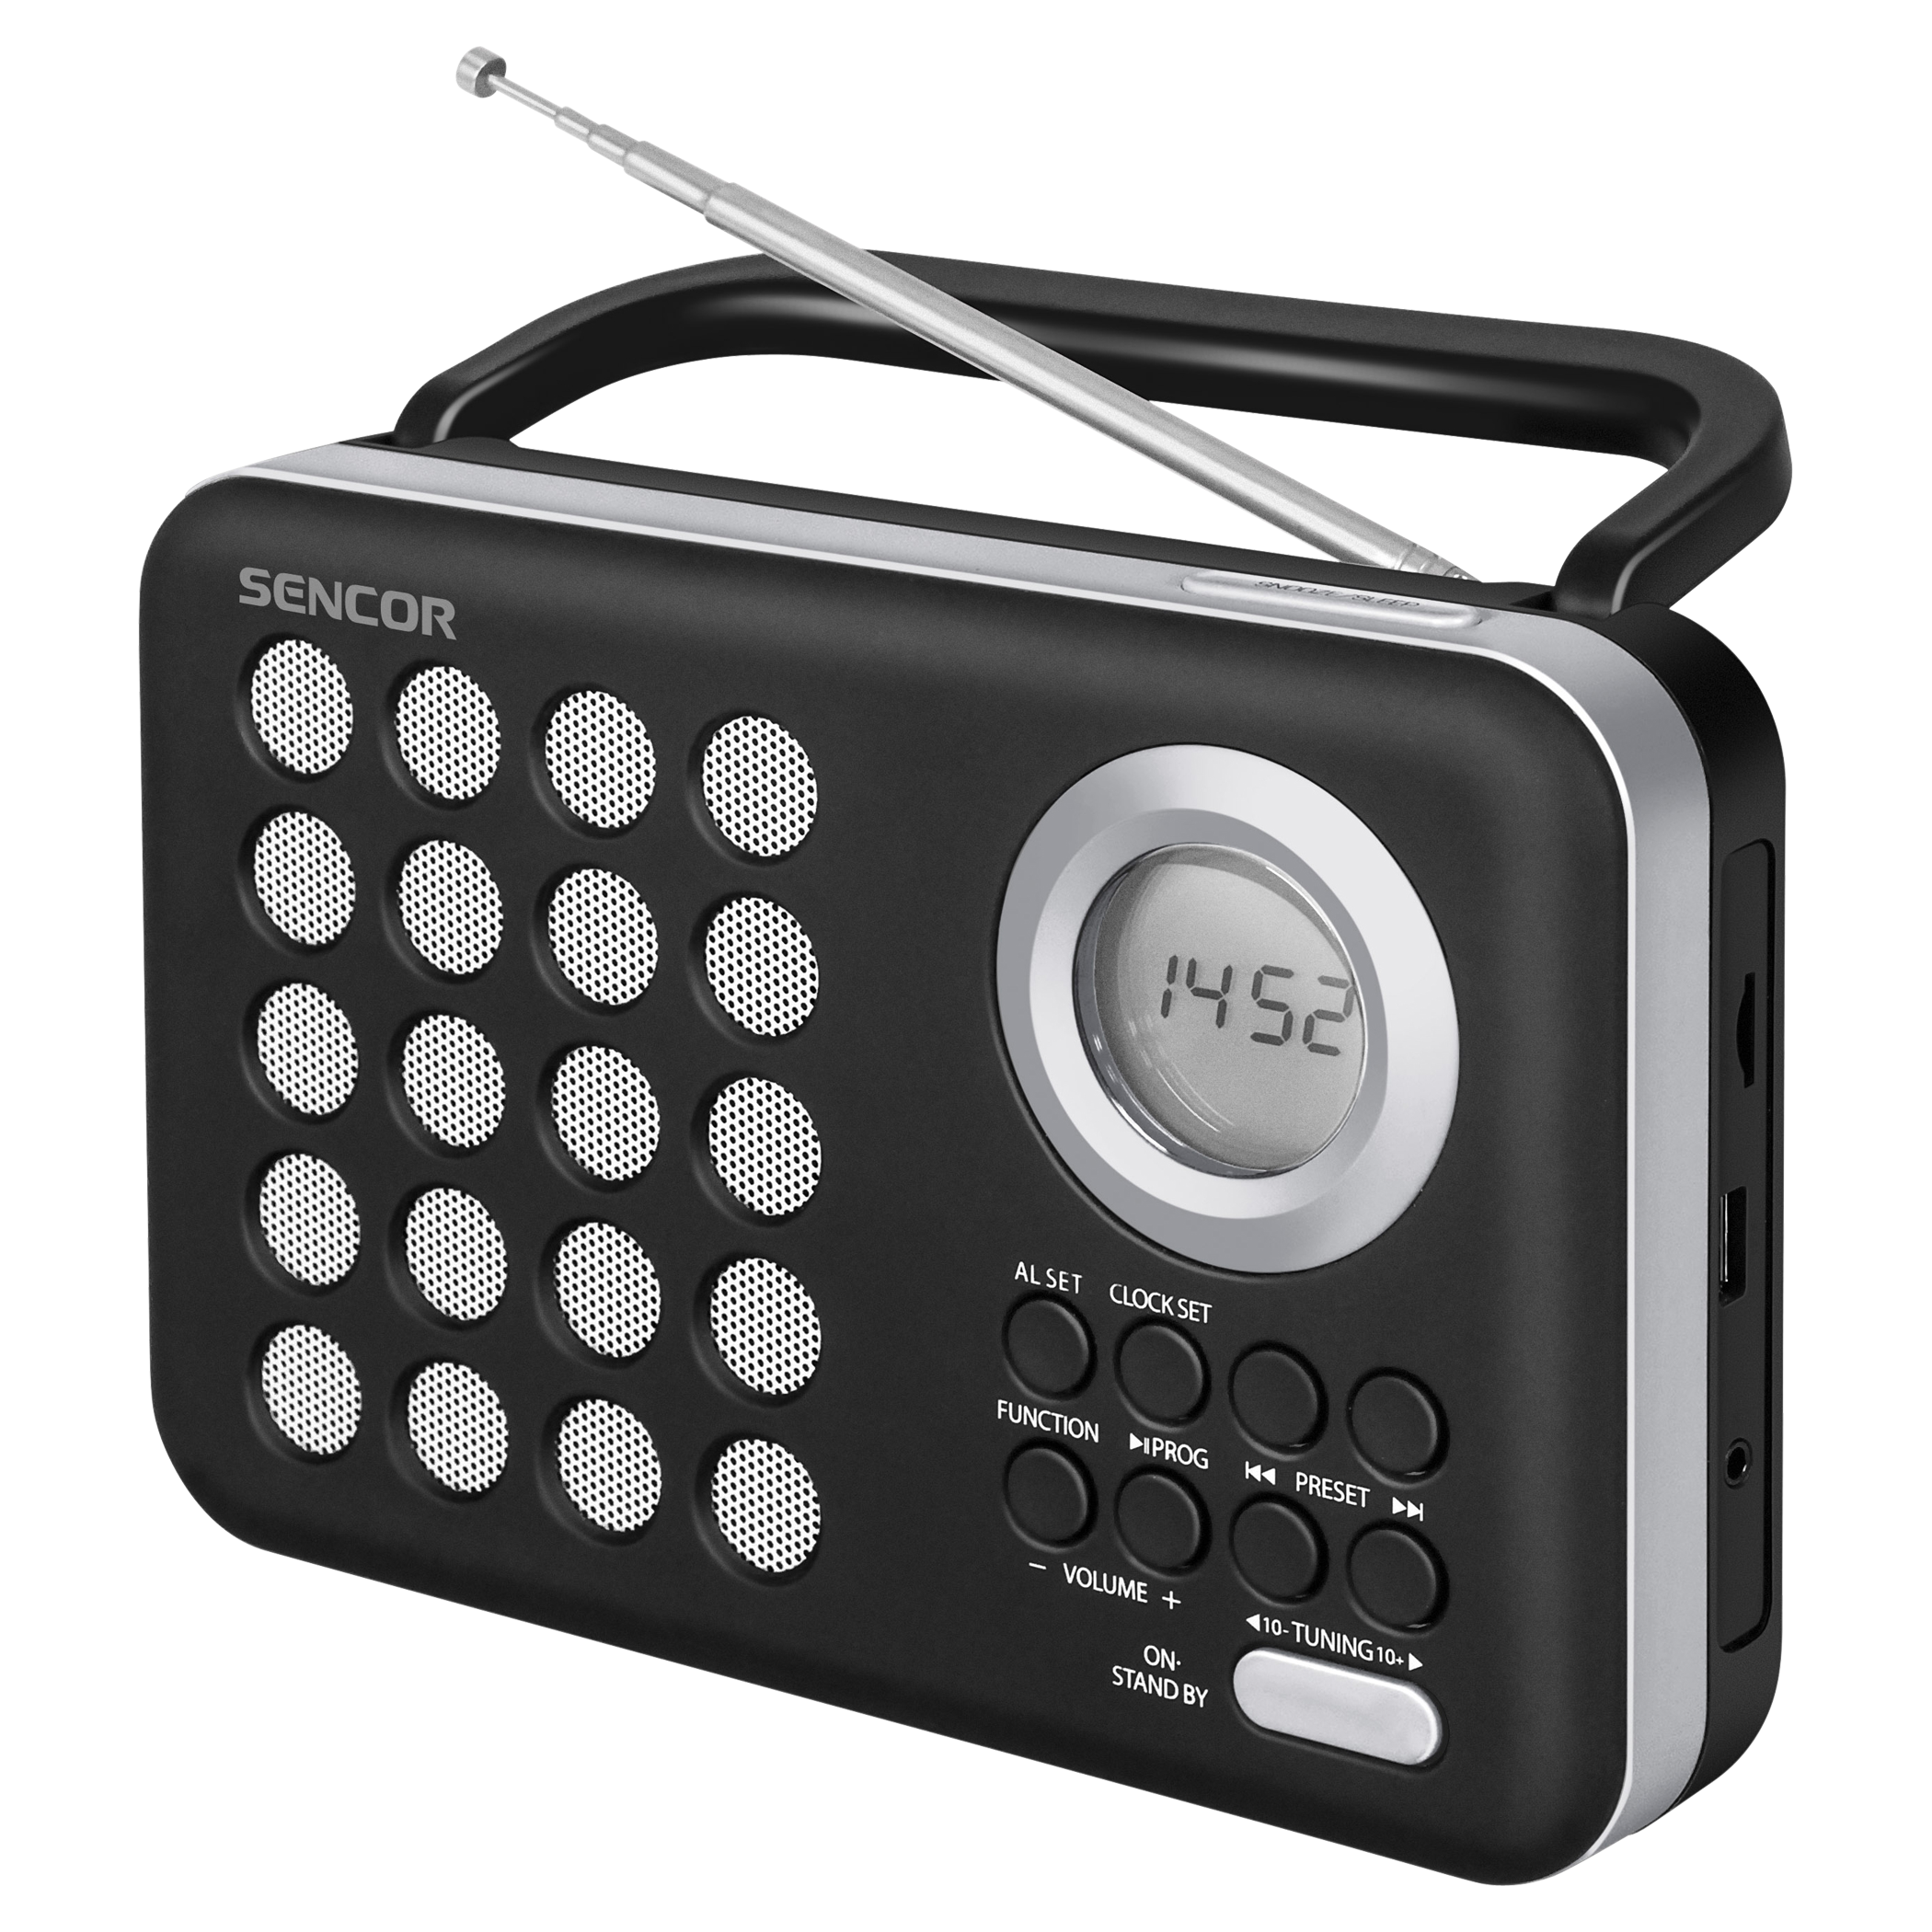 SRD 220 BS Radio FM digital